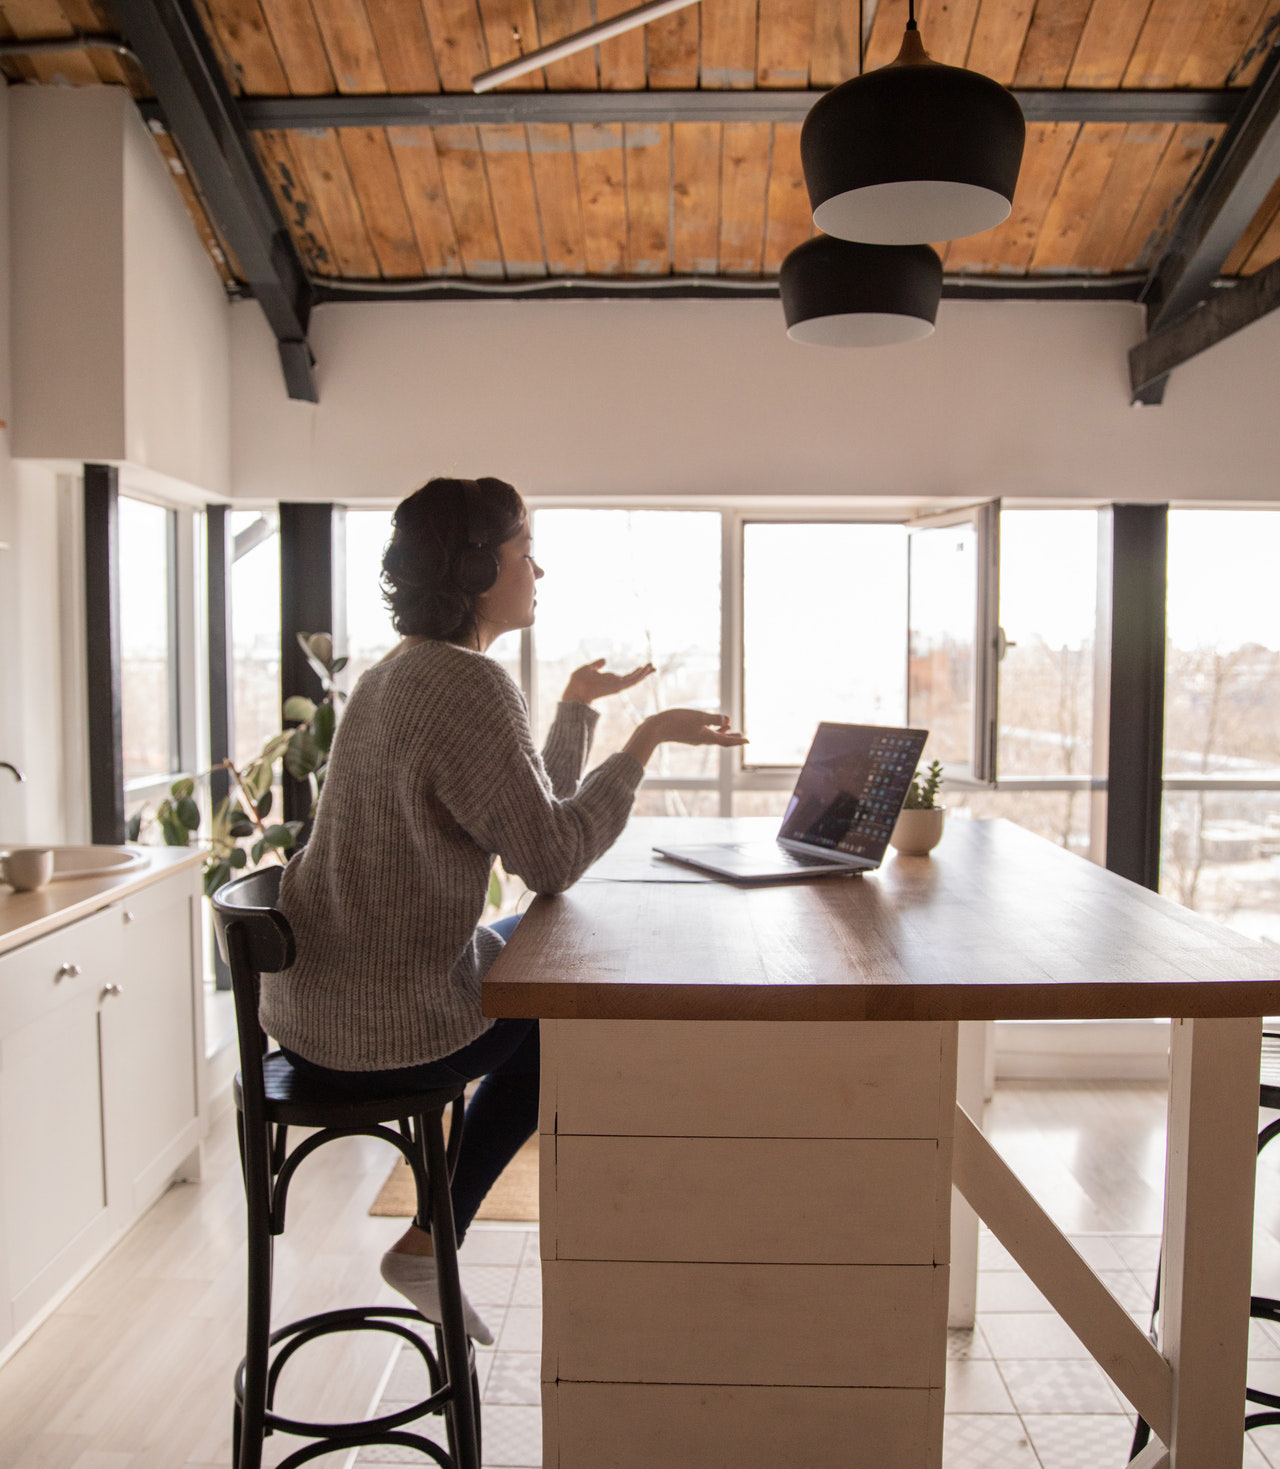 female business owner small business working from home